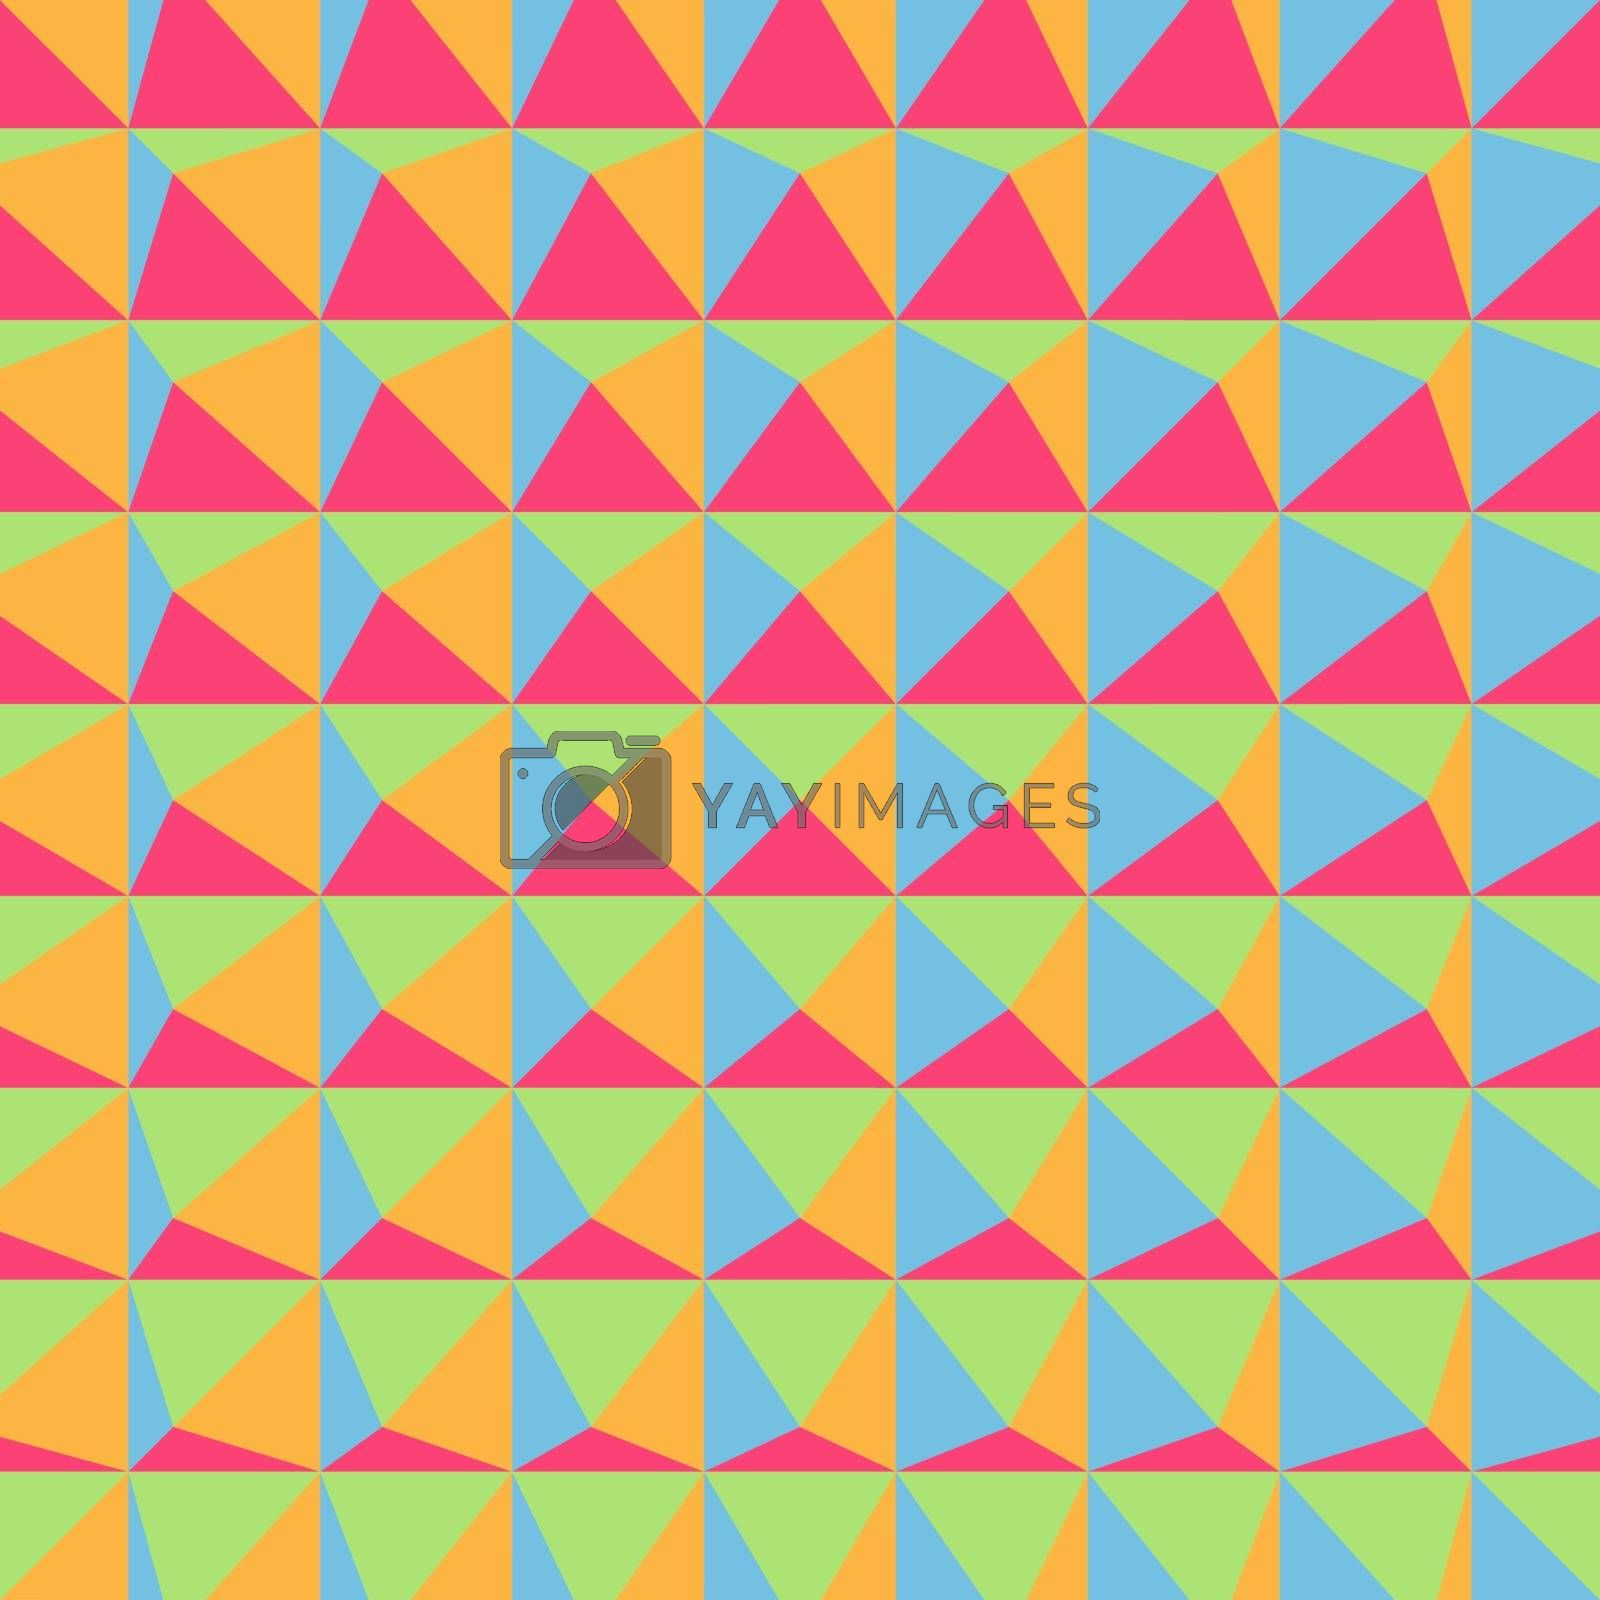 Abstract 3d geometric pattern. Polygonal background. Vector illustration. Can Be Used For Wallpaper, Web Page Background, Book Cover.